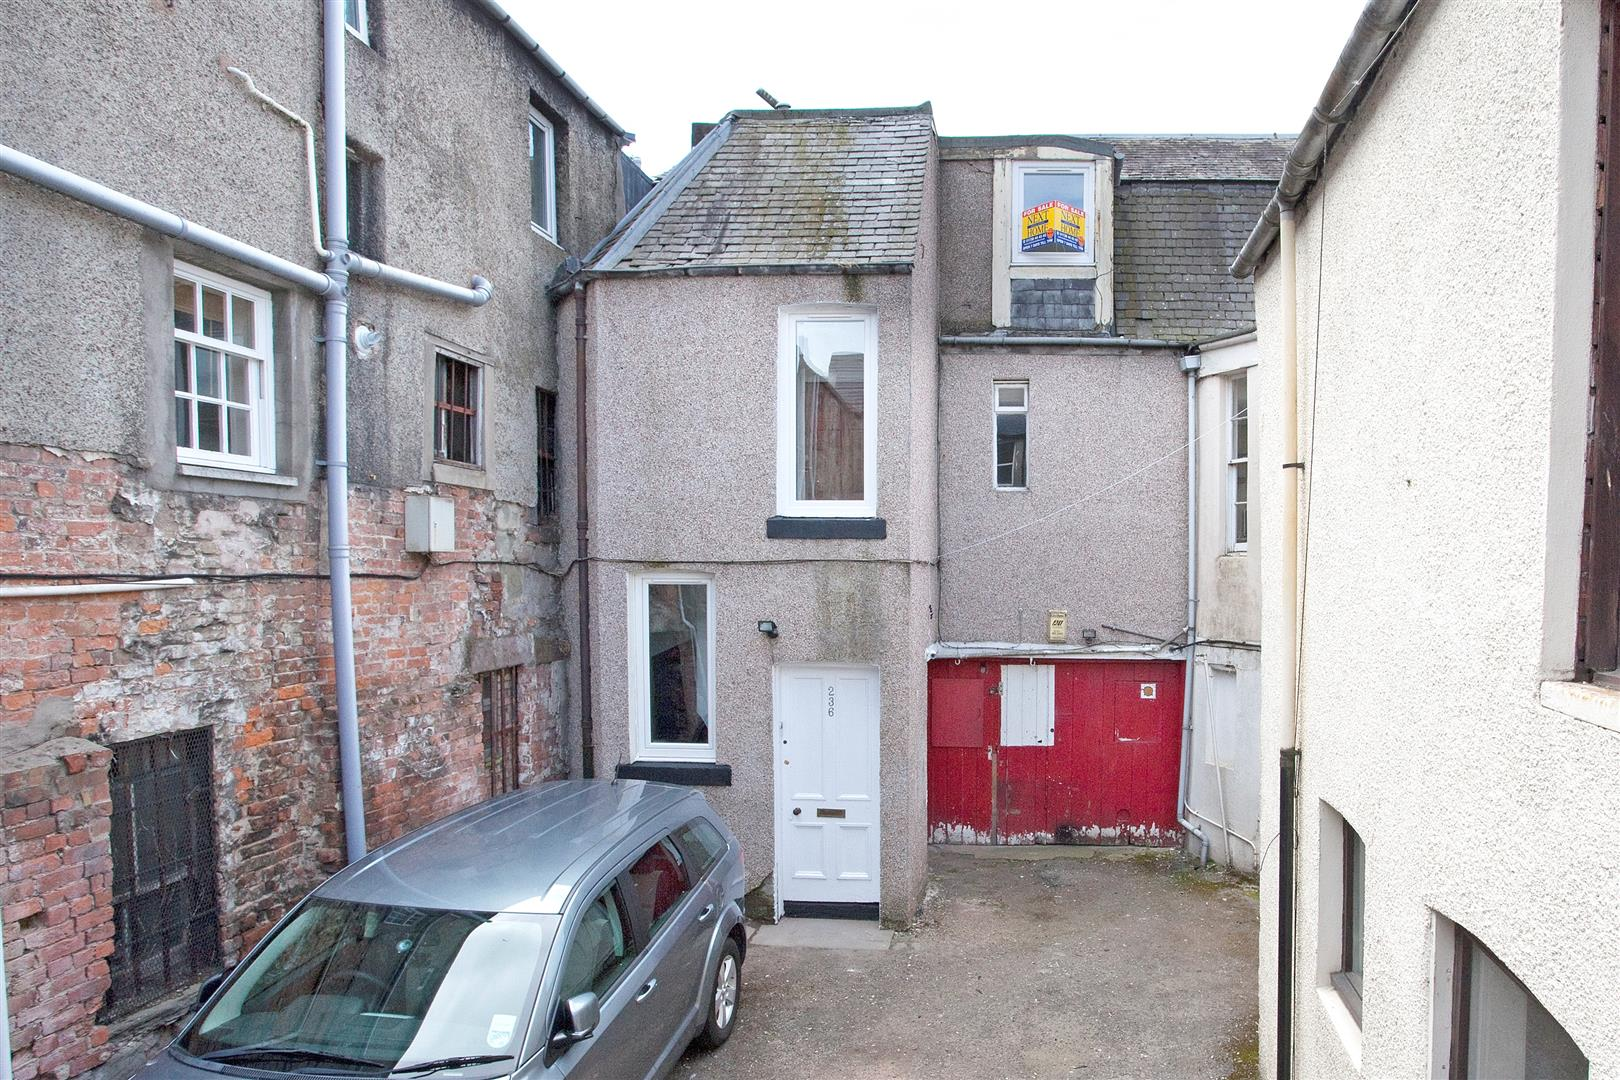 2-1, 236, High Street, Perth, Perthshire, PH1 5QJ, UK